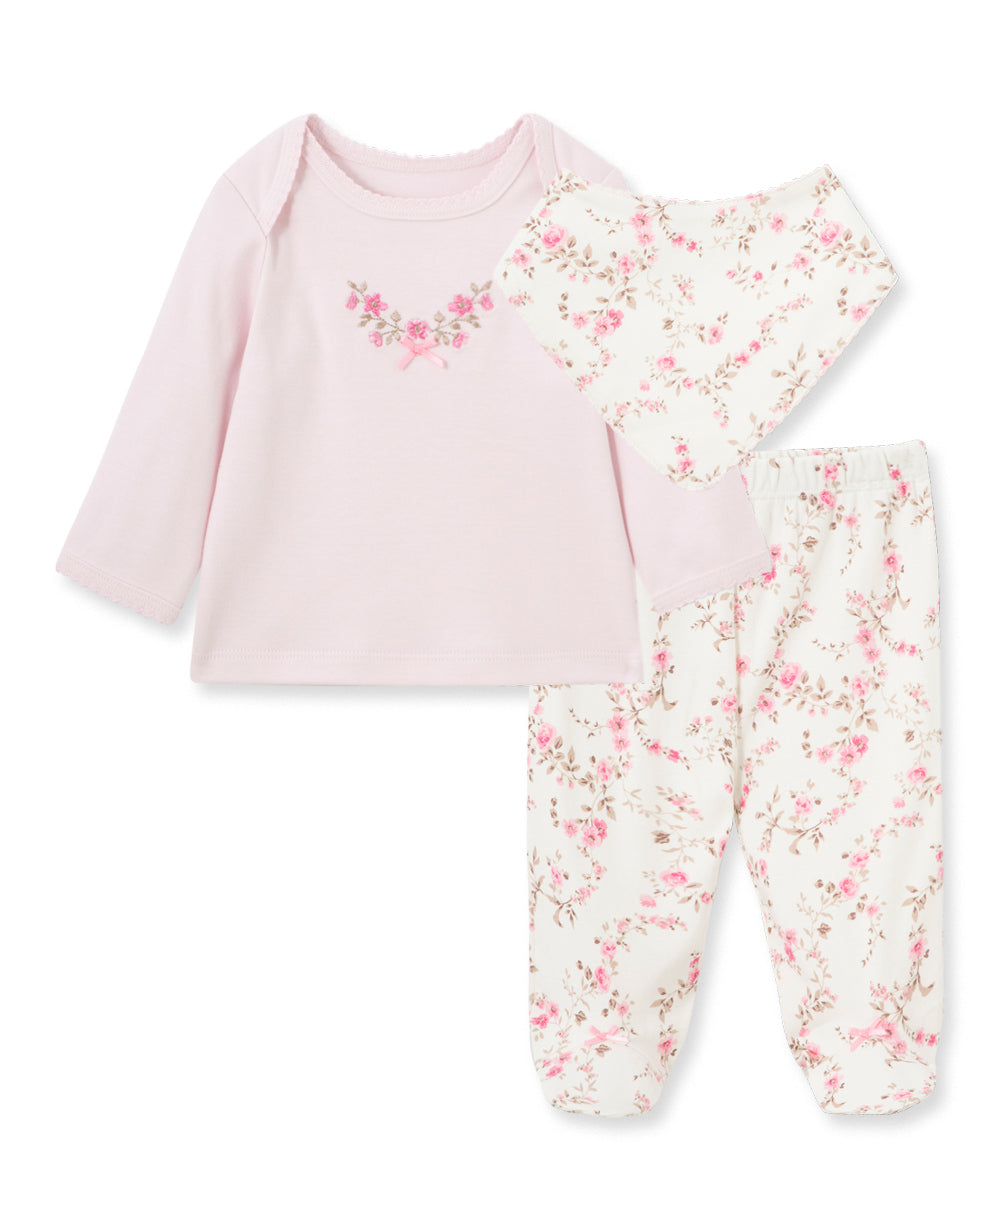 3Pc Lt Pink Pant Set